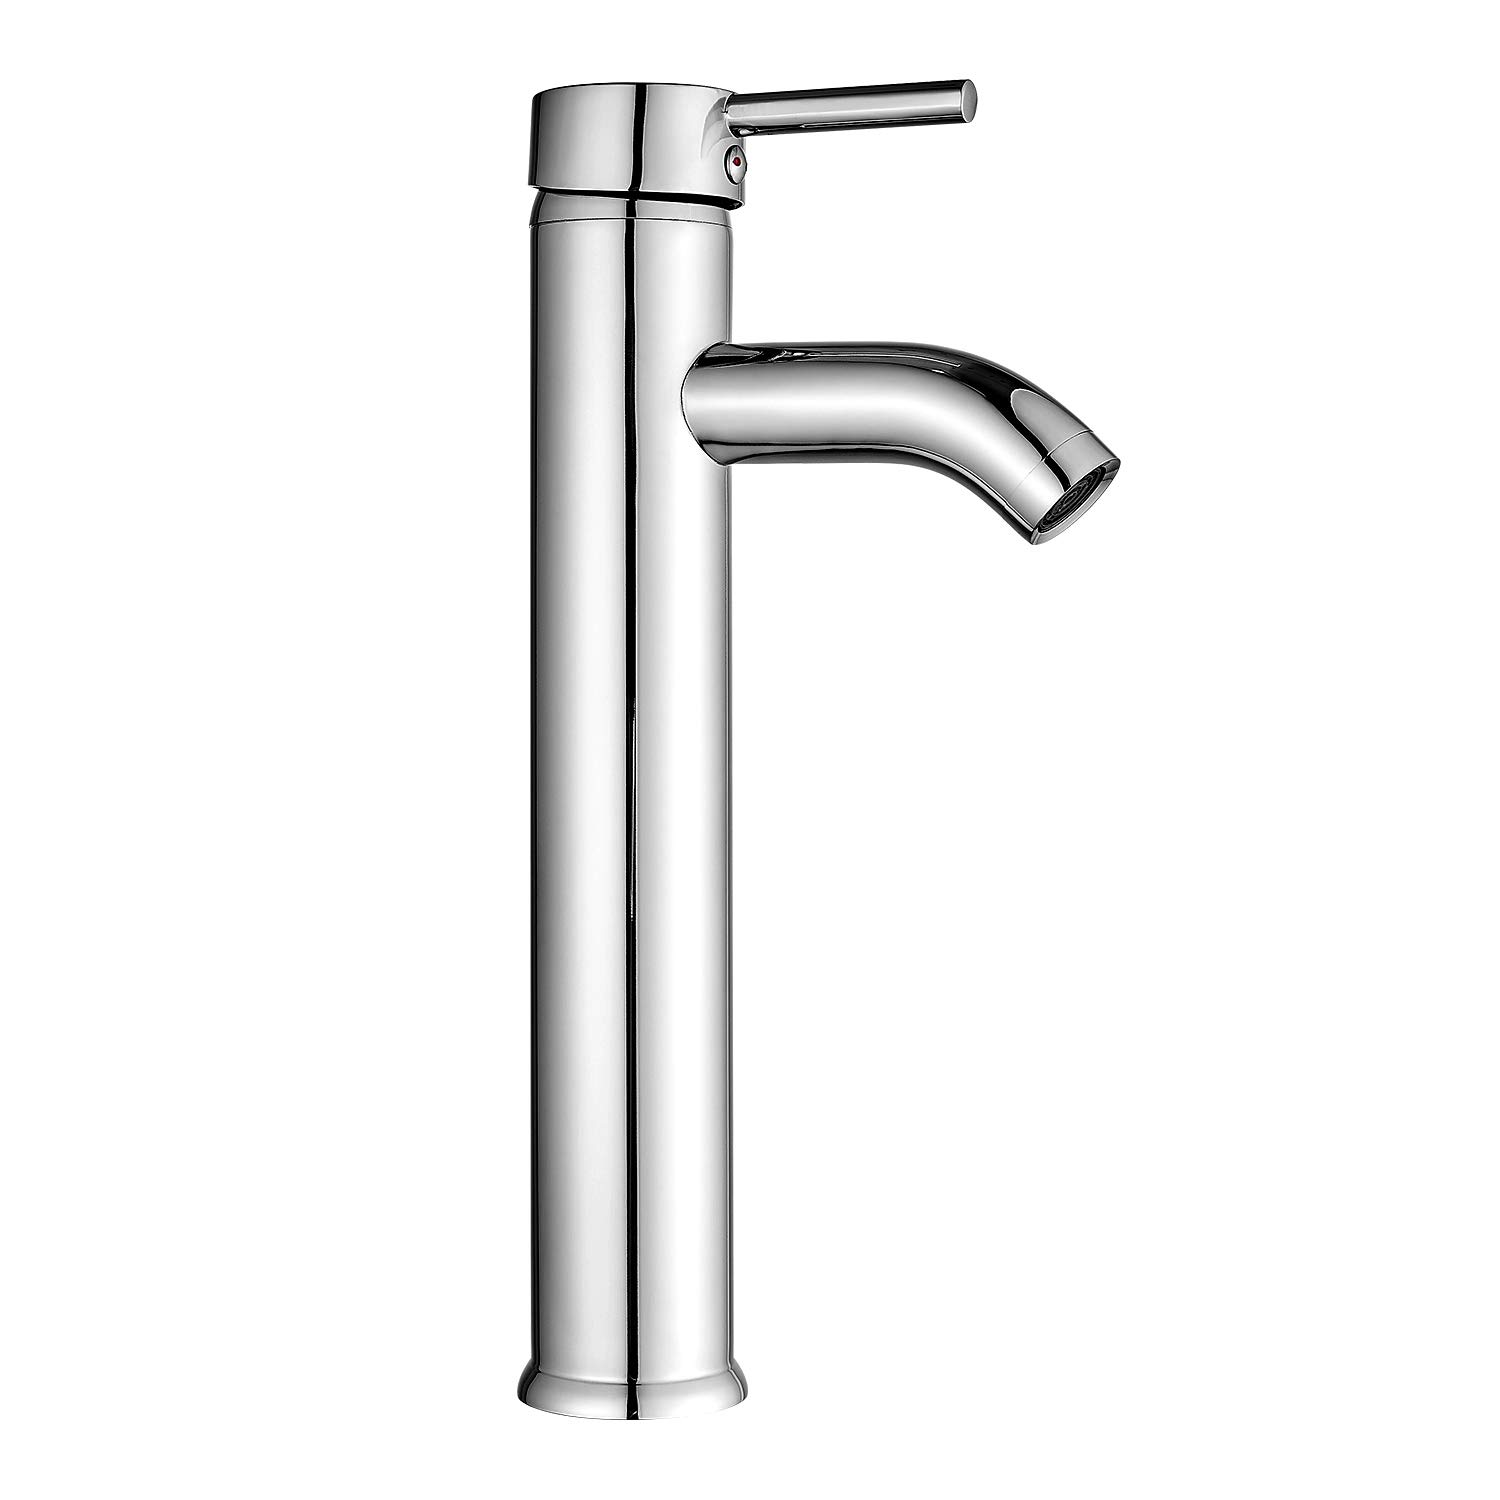 HOROW Bathroom Bowl Vessel Sink Lavatory Faucet Single Handle One Hole Deck Mount Tall Body Chrome by HOROW